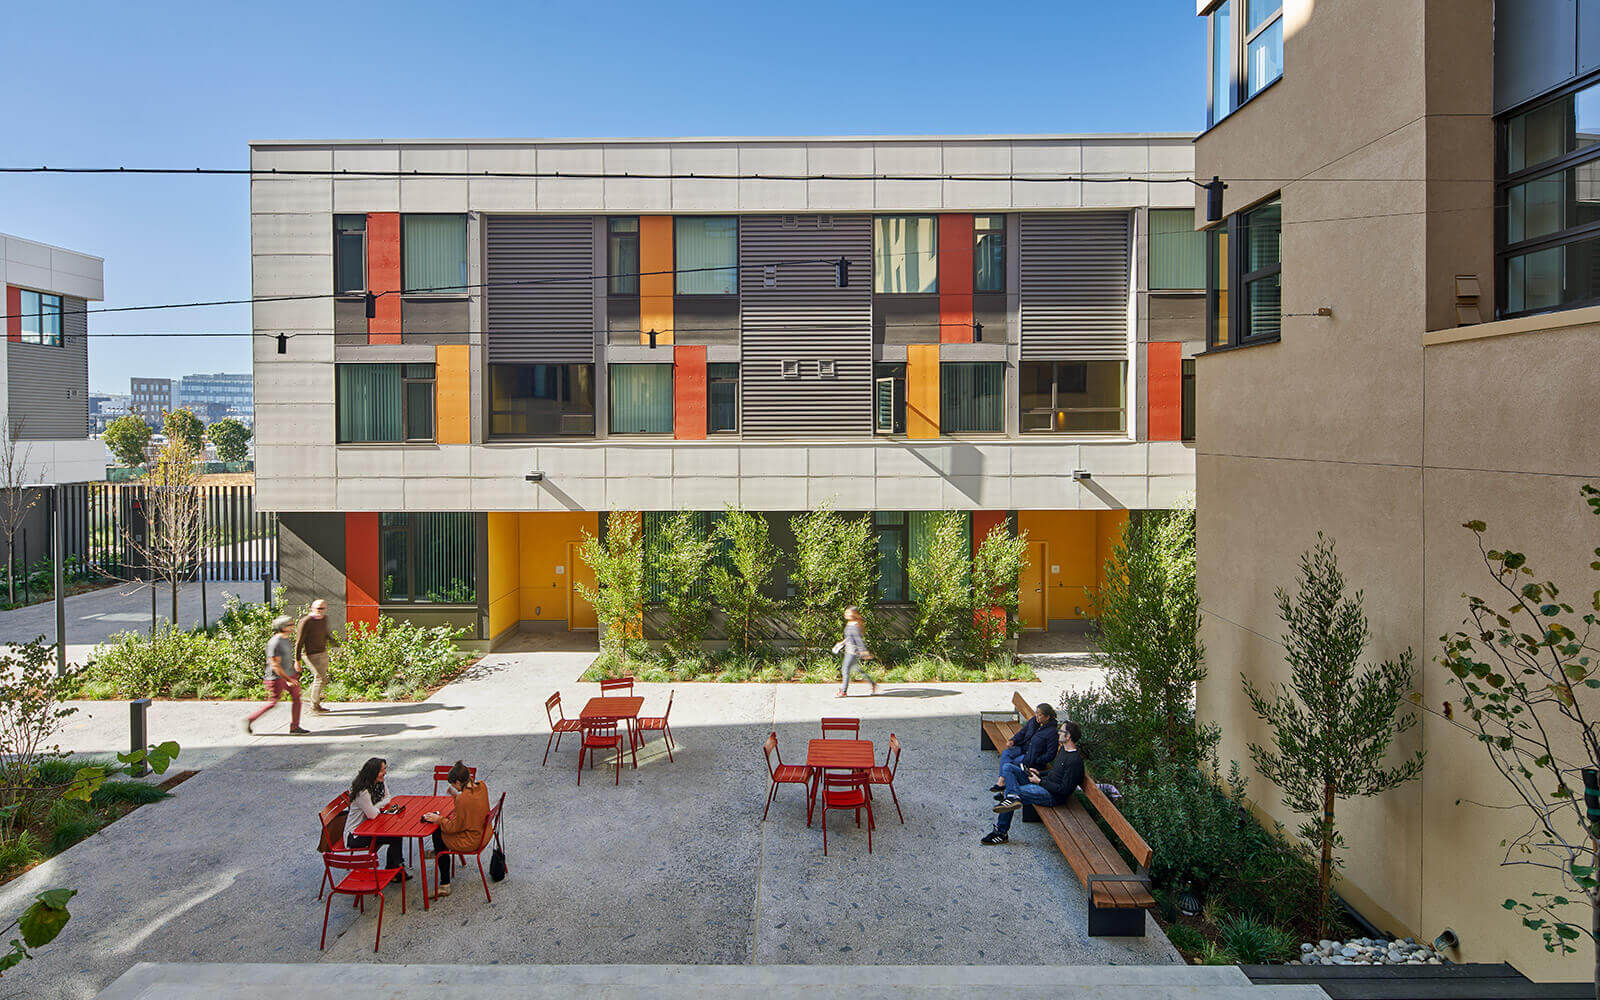 626 Mission Bay Courtyard